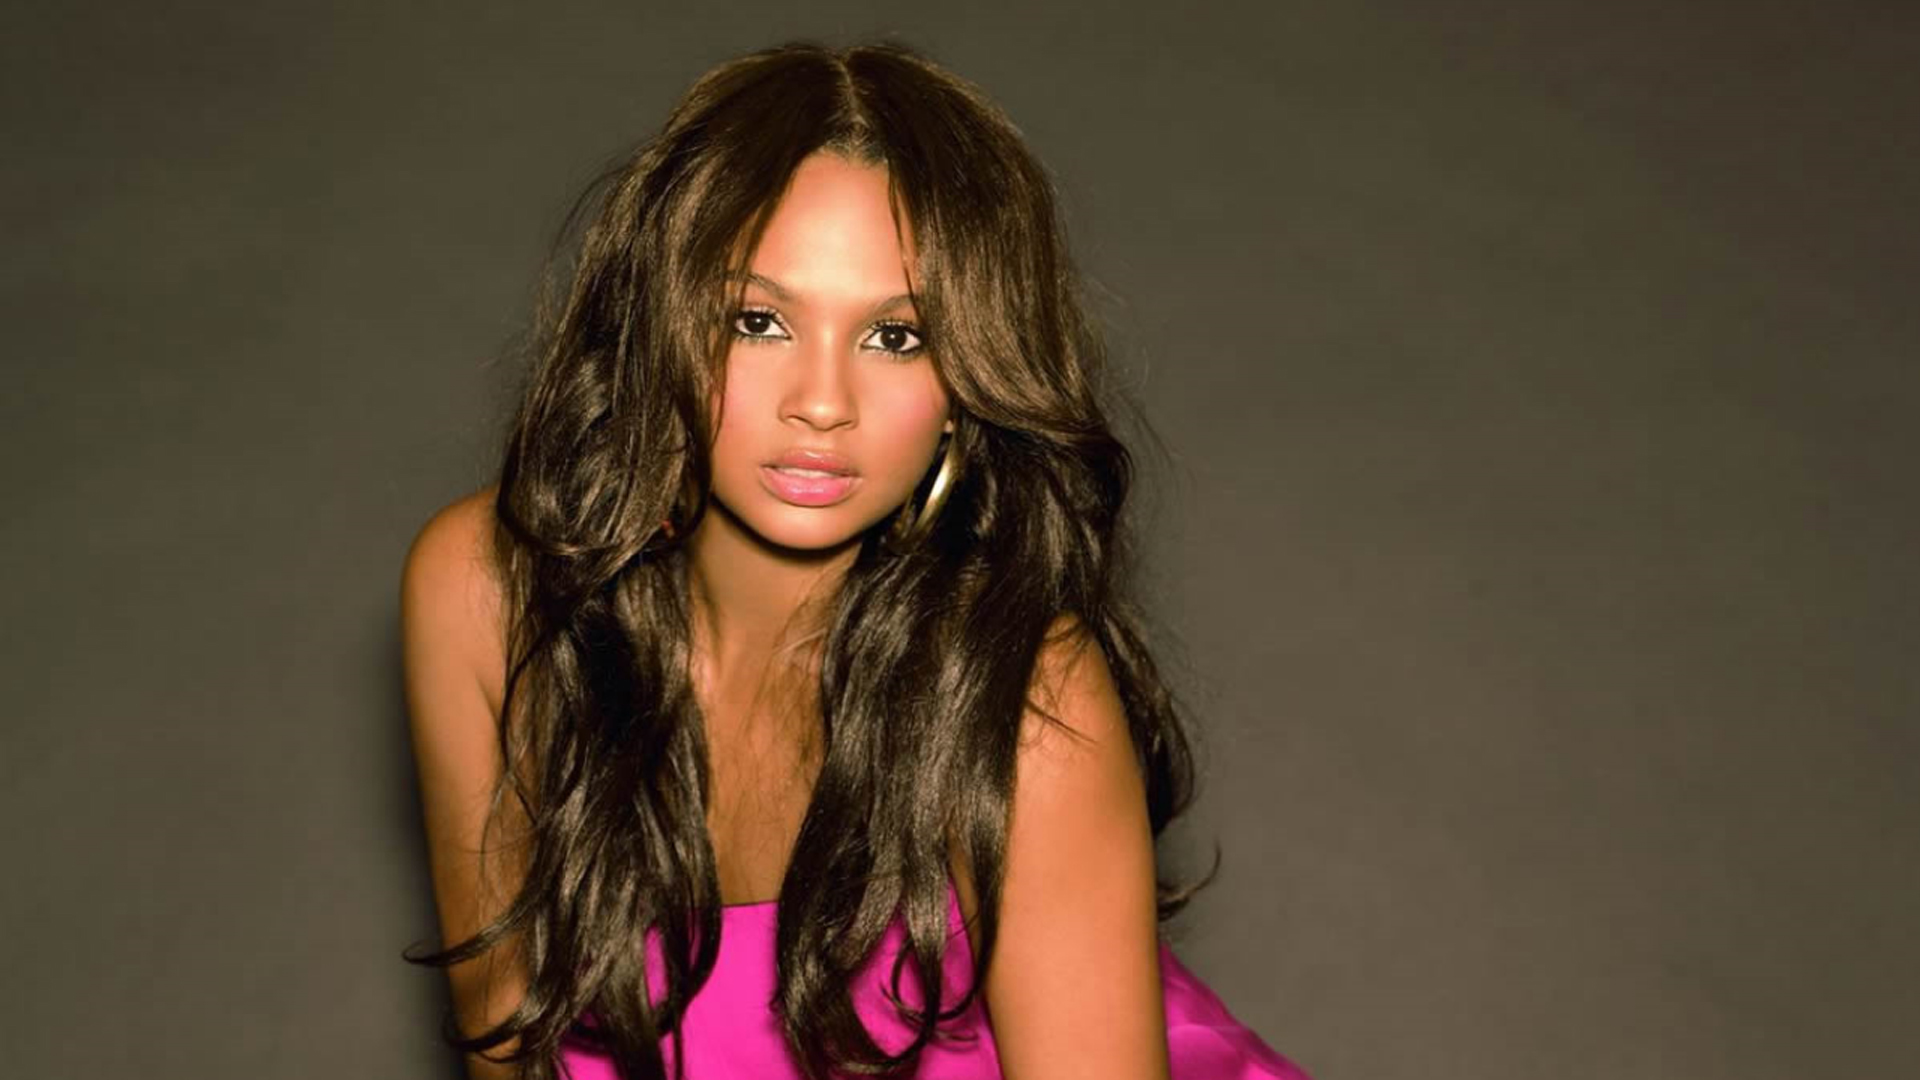 Alesha Dixon Wallpapers